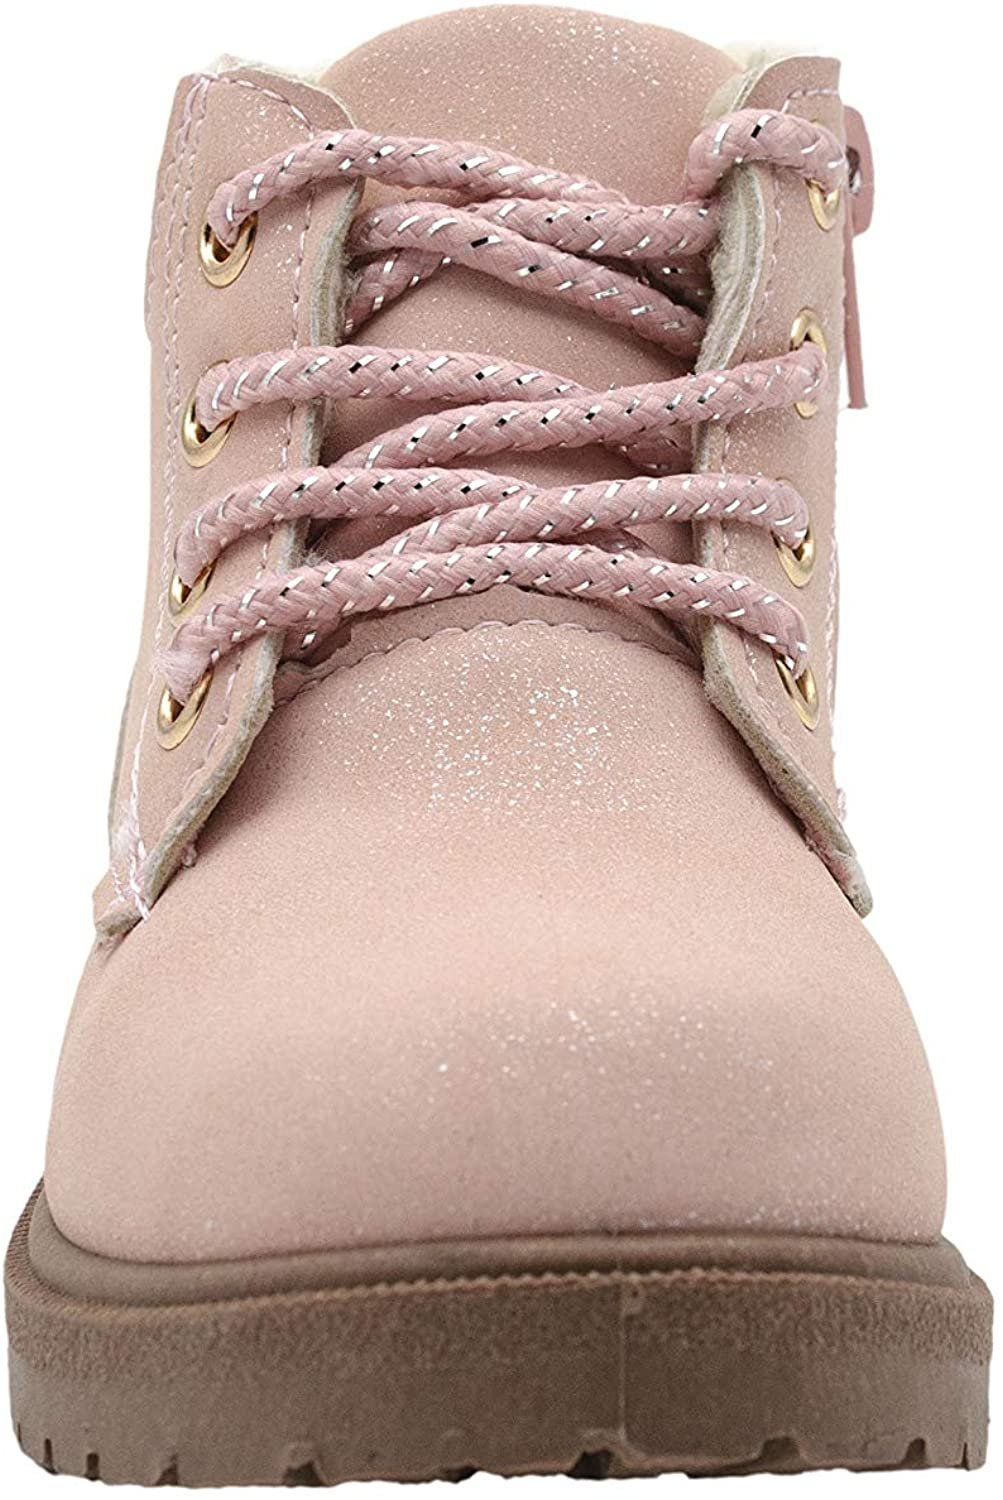 Rampage Toddler Girls' Little Kid Slip On Short Shimmer Nubuck Boots with Metallic Trims